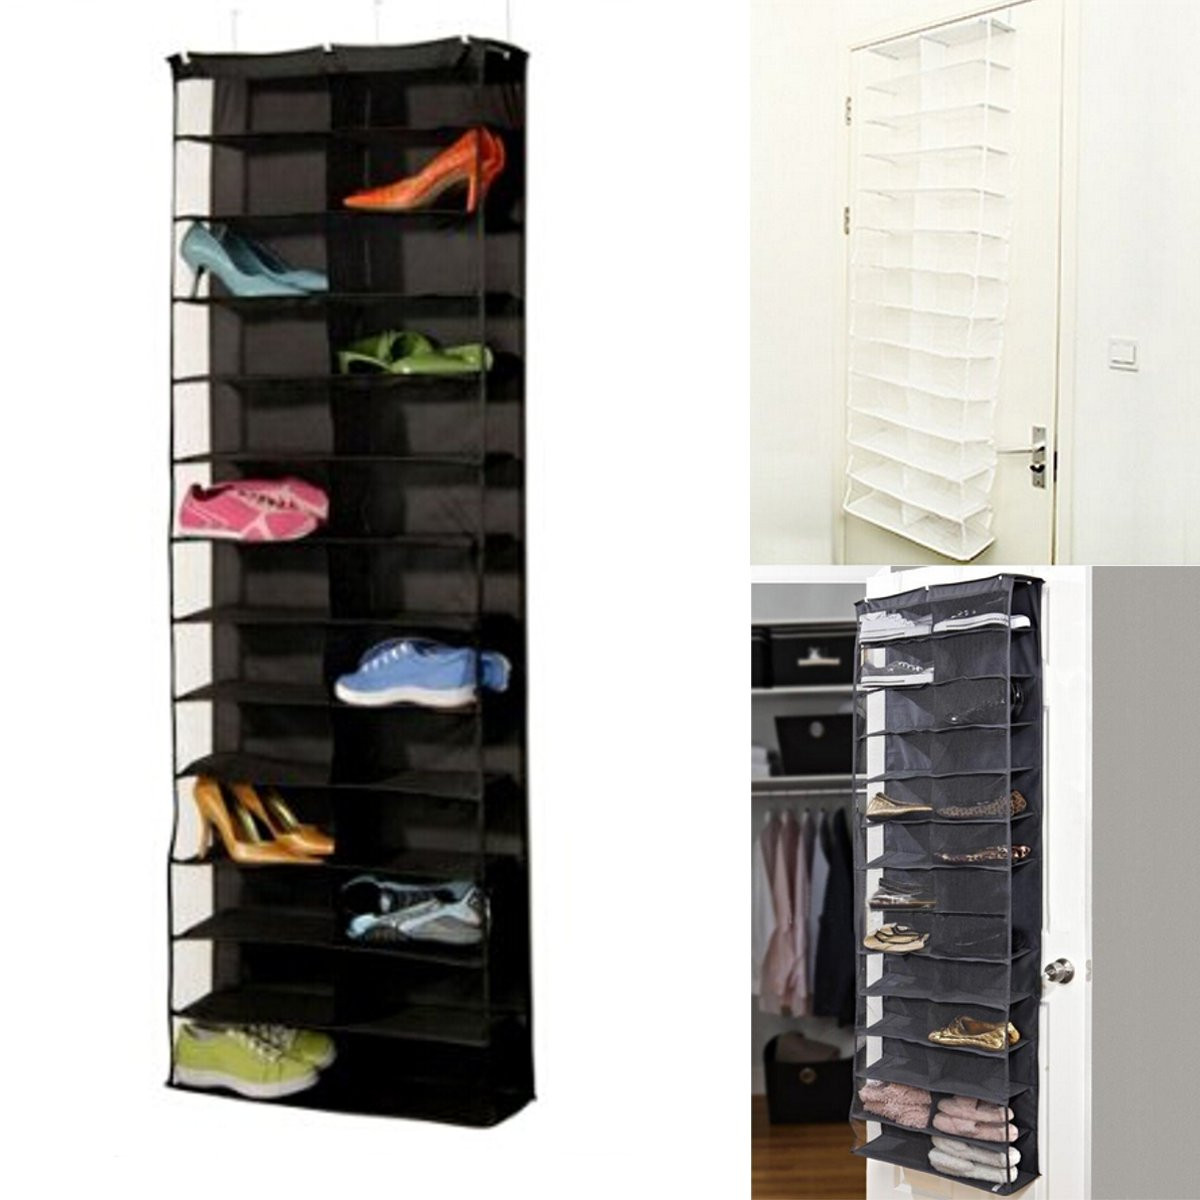 Aliexpress.com : Buy Shoe Rack Door Wall Hanging Shelf Bag Shoes Stand  Holder Home Living Room Storage Organizer 26 Pairs From Reliable Shoe Bag  Wholesale ... Part 95